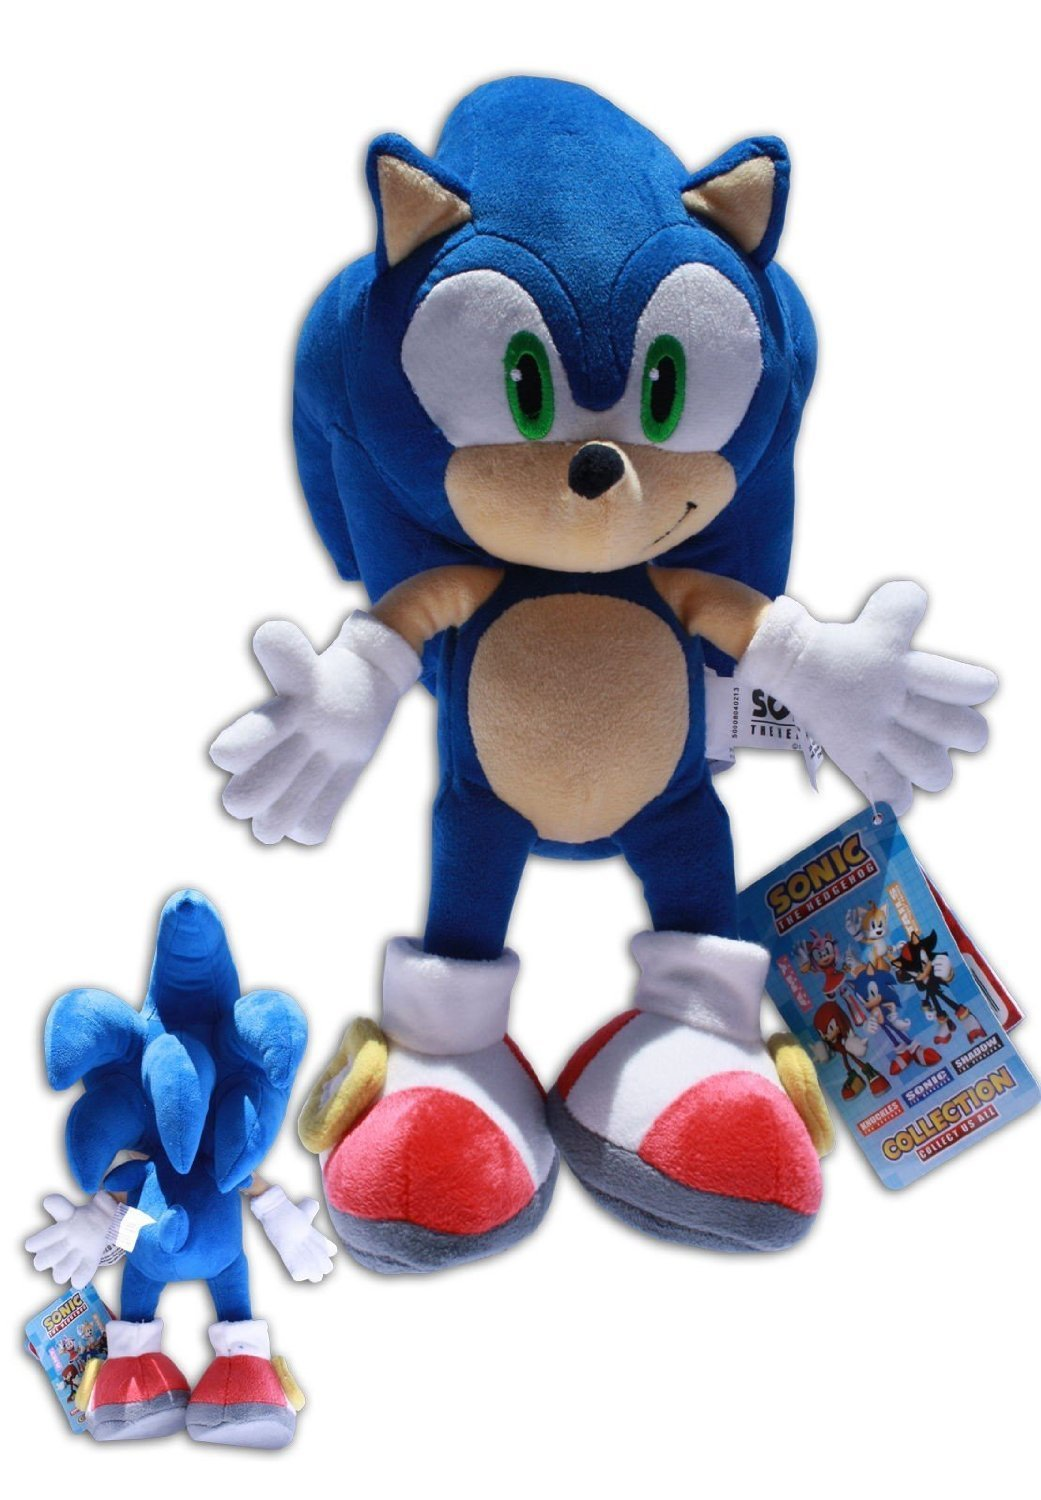 Buy Sonic The Hedgehog Plush Toy Quot Sonic Quot Blue 12 Quot 33cm Of The Video Game Sega Quot Sonic The Hedgehog Quot Quality Super Soft In Cheap Price On M Alibaba Com